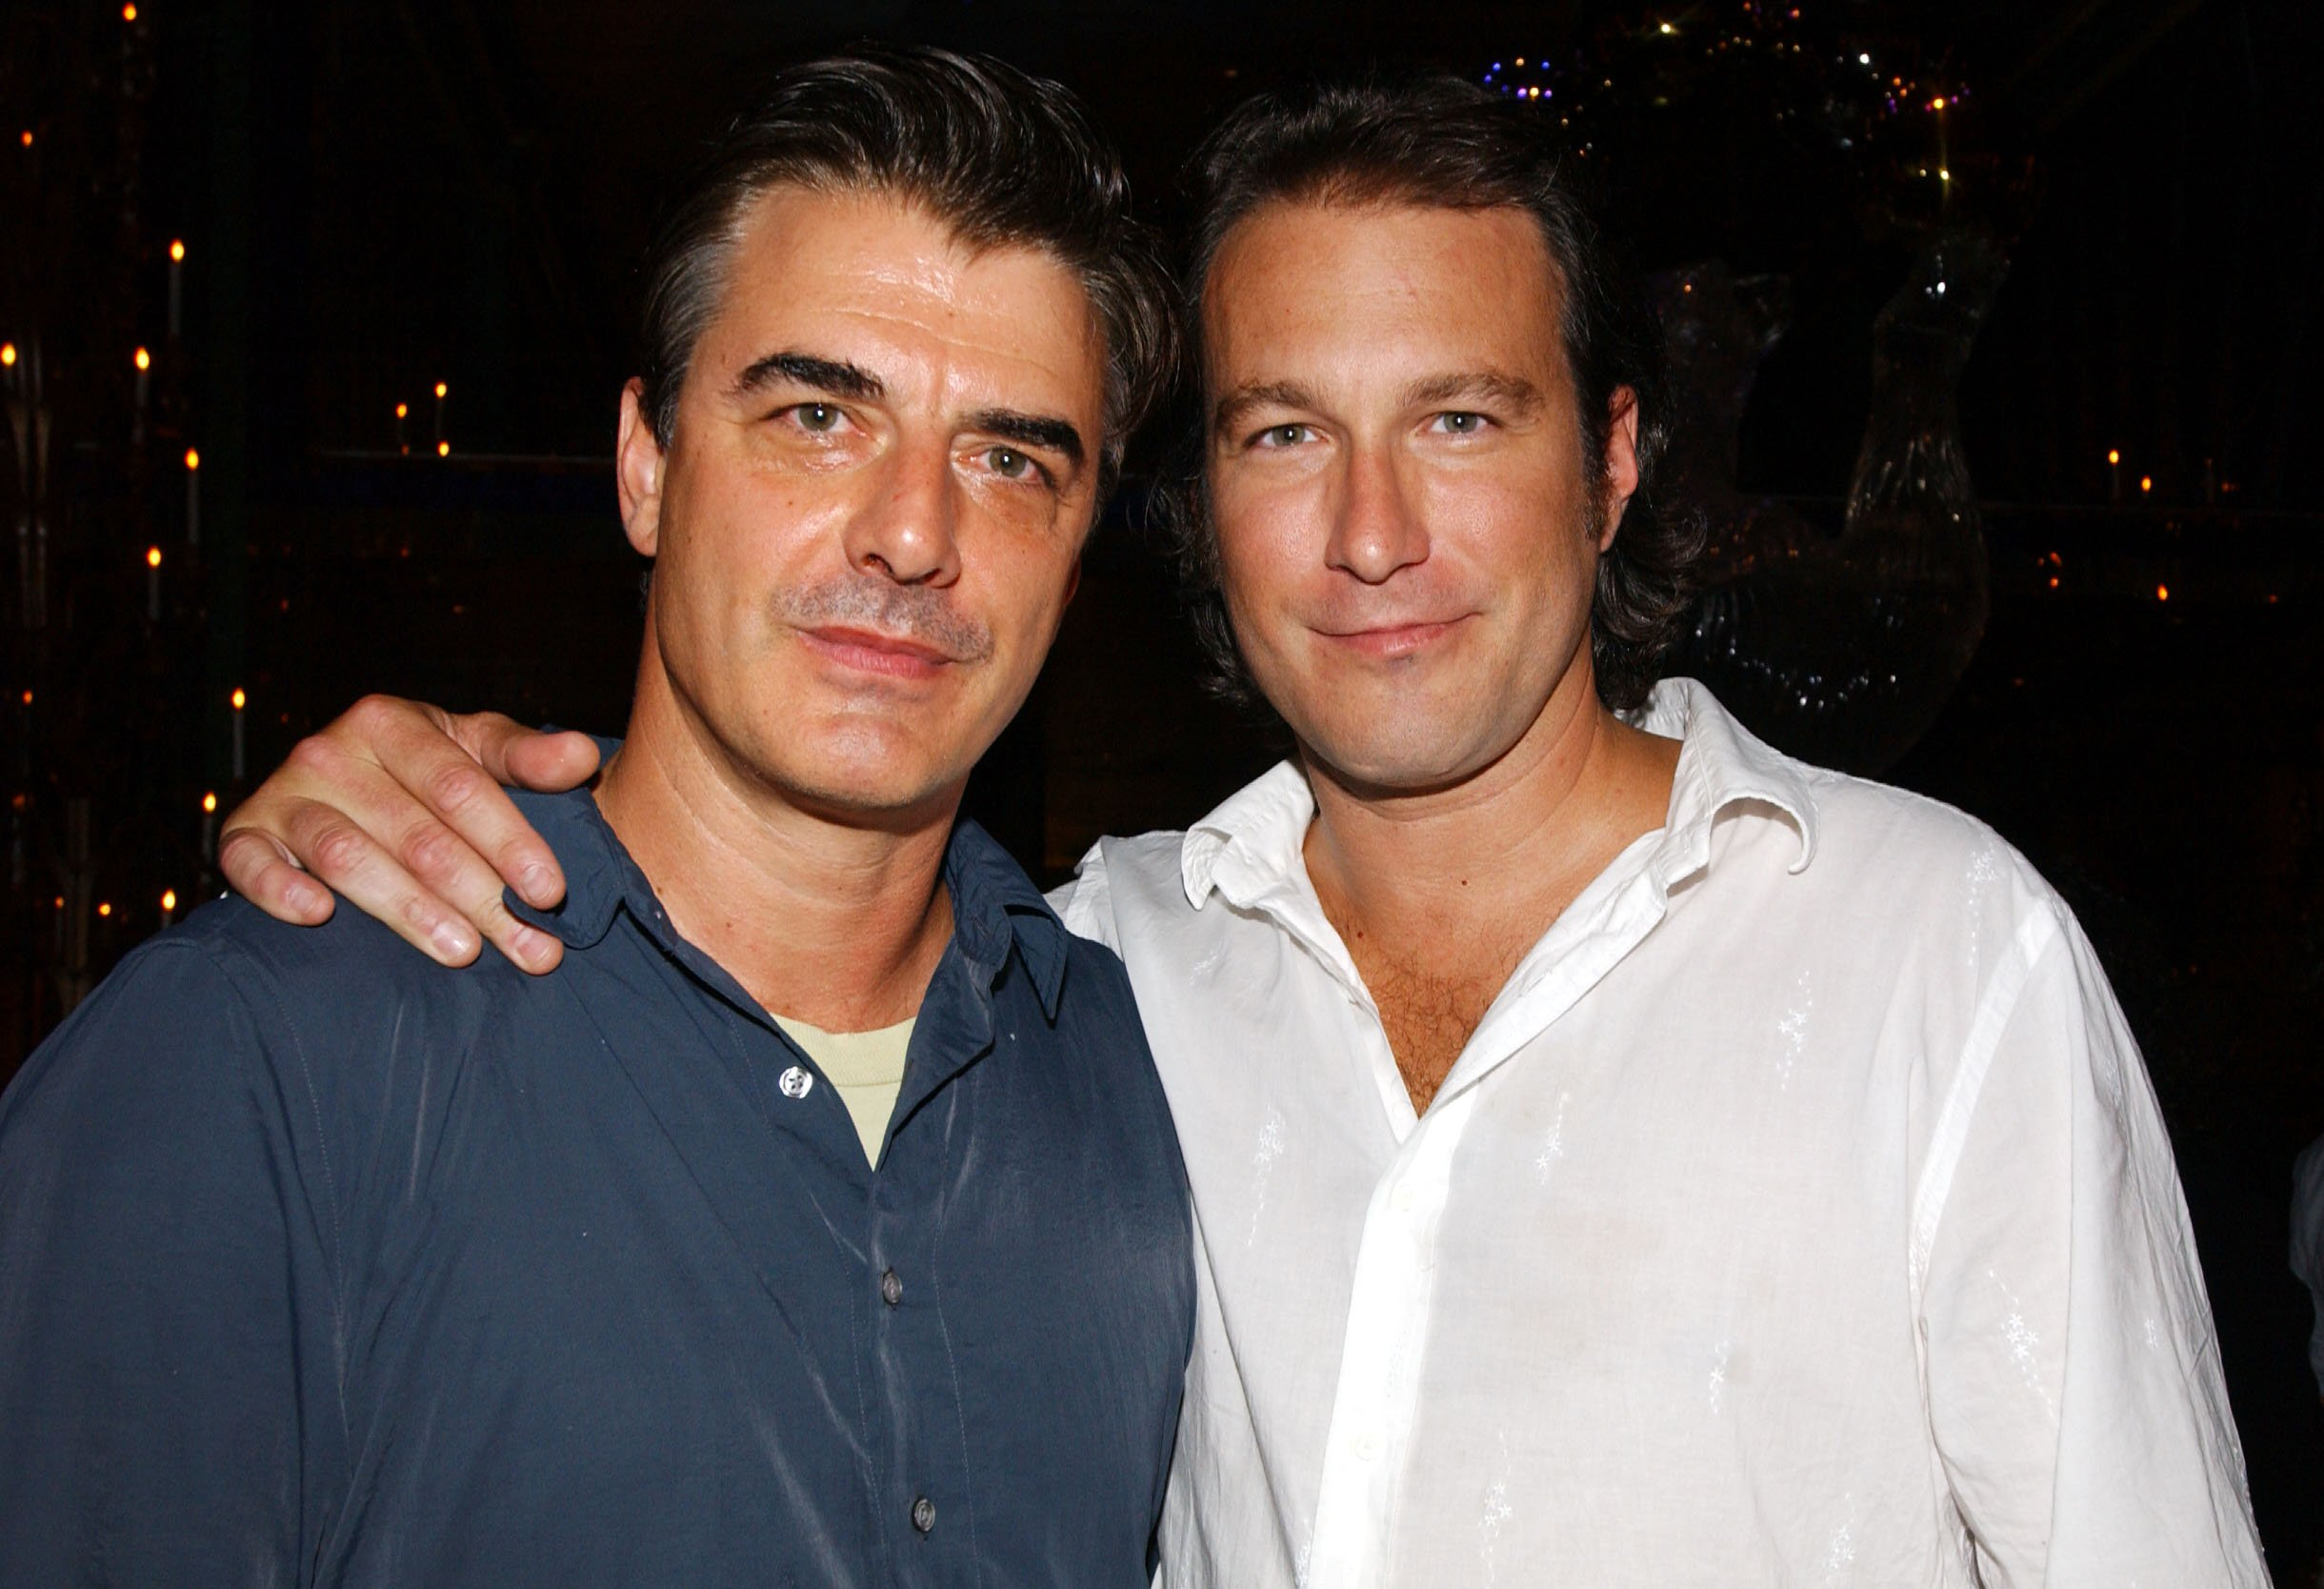 Image Credits: Getty Images / John Corbett and a fellow actor.